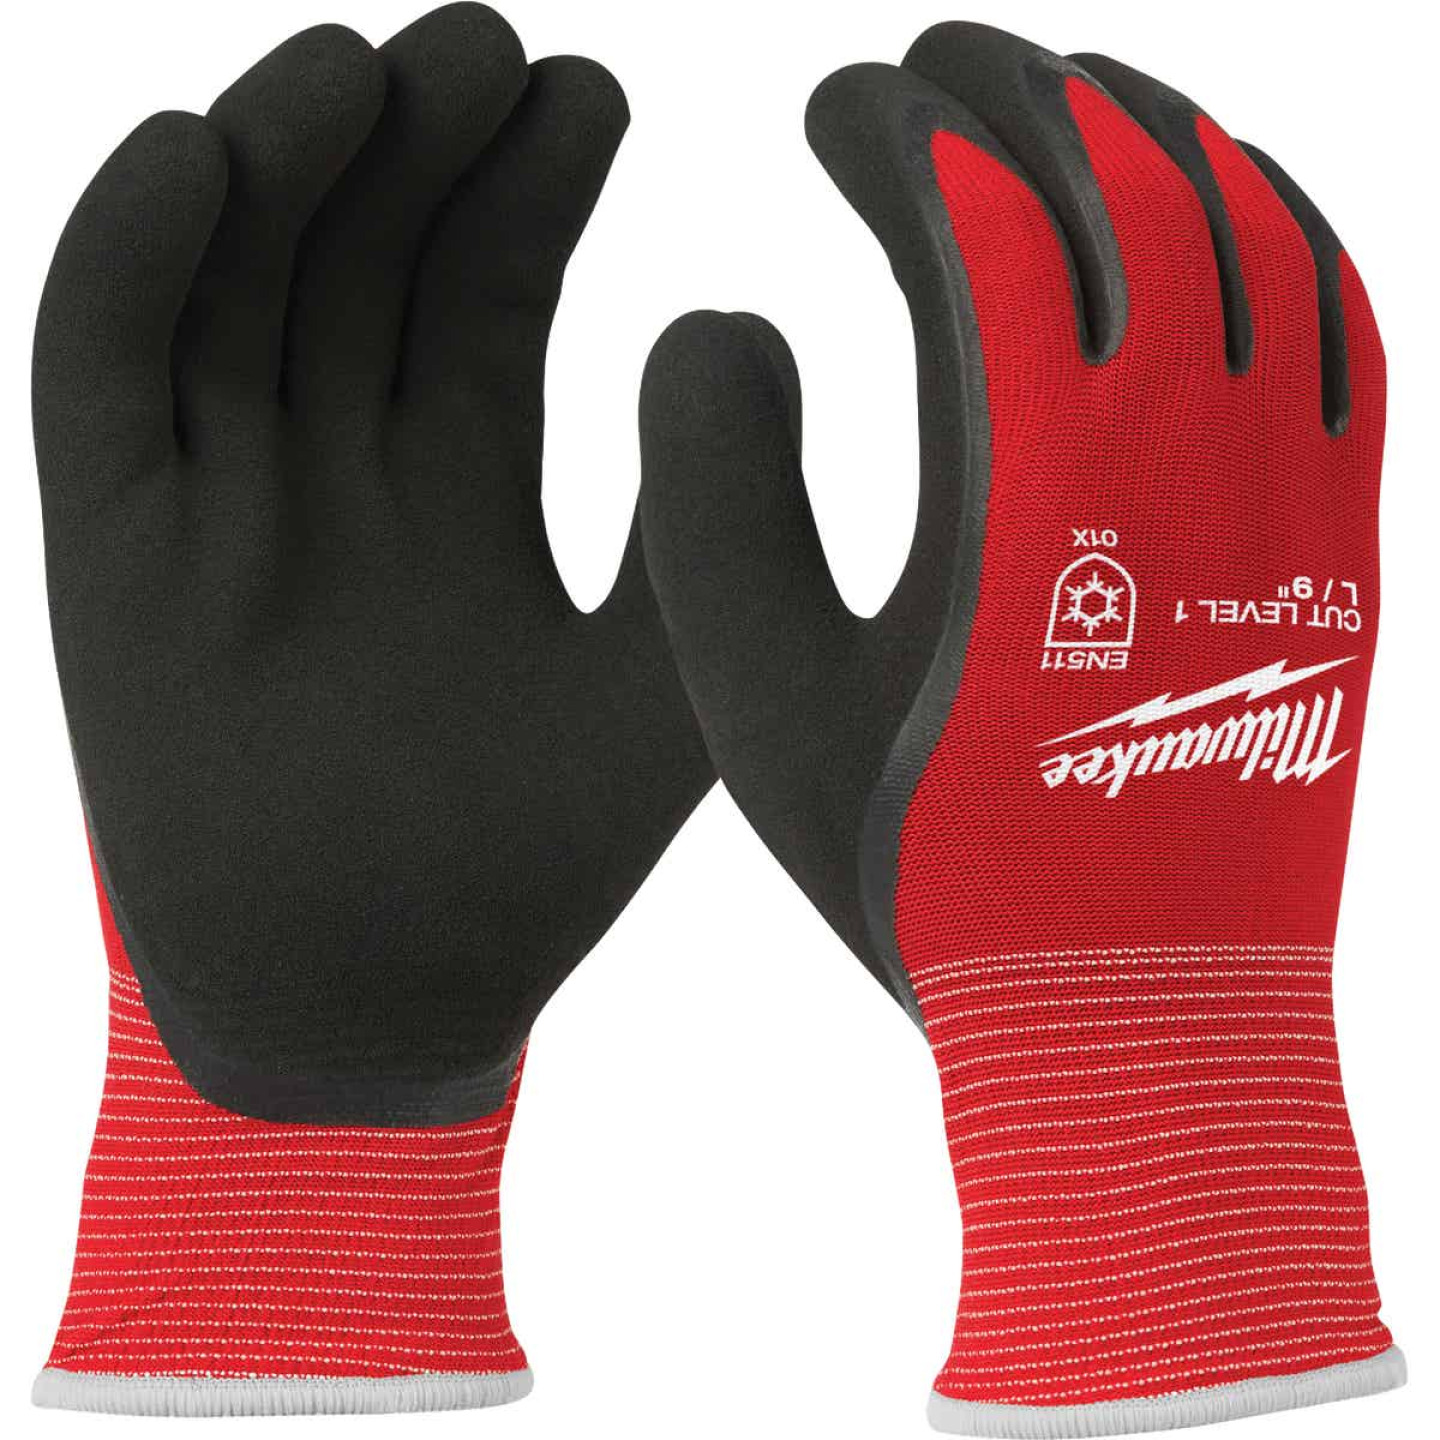 Milwaukee Men's L Latex Coated Cut Level 1 Insulated Work Glove Image 1